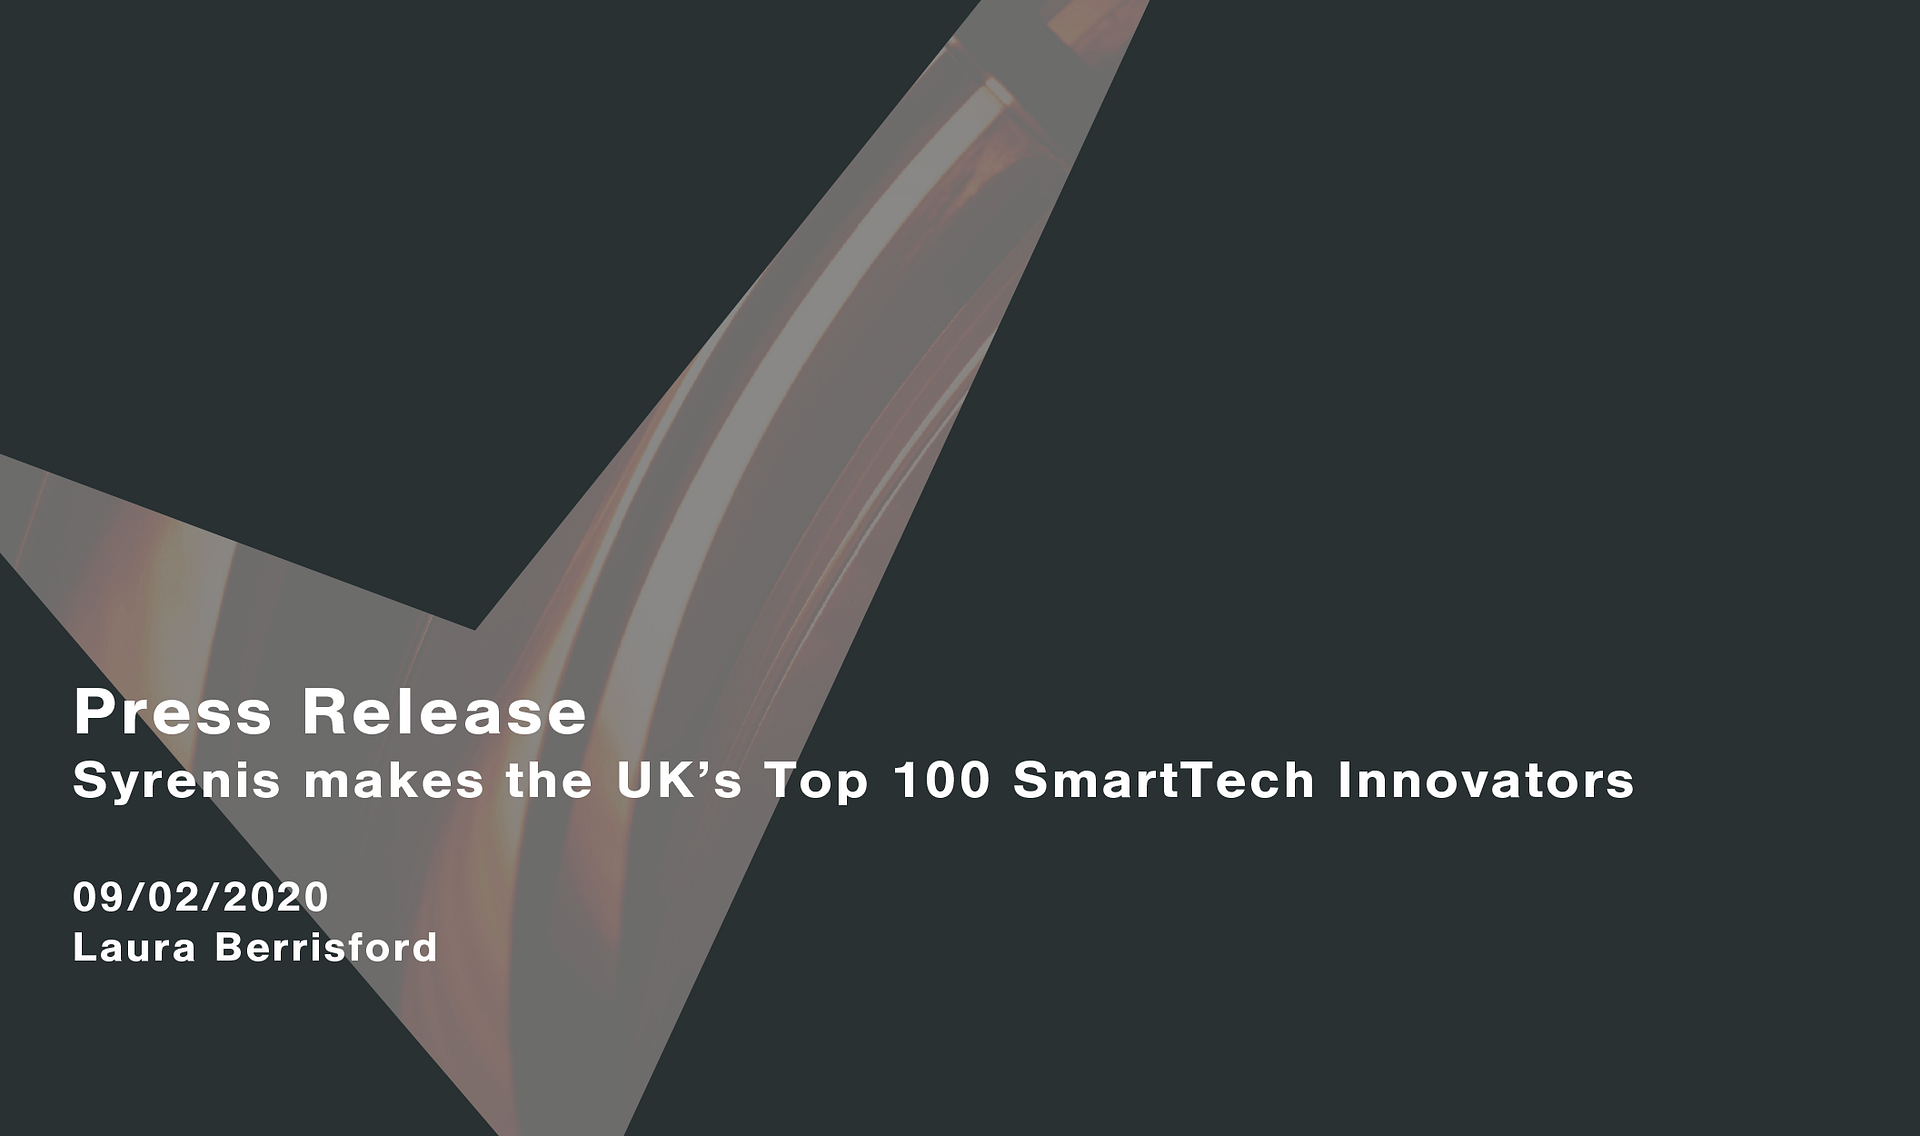 Syrenis-makes-the-UKs-Top-100-SmartTech-Innovators